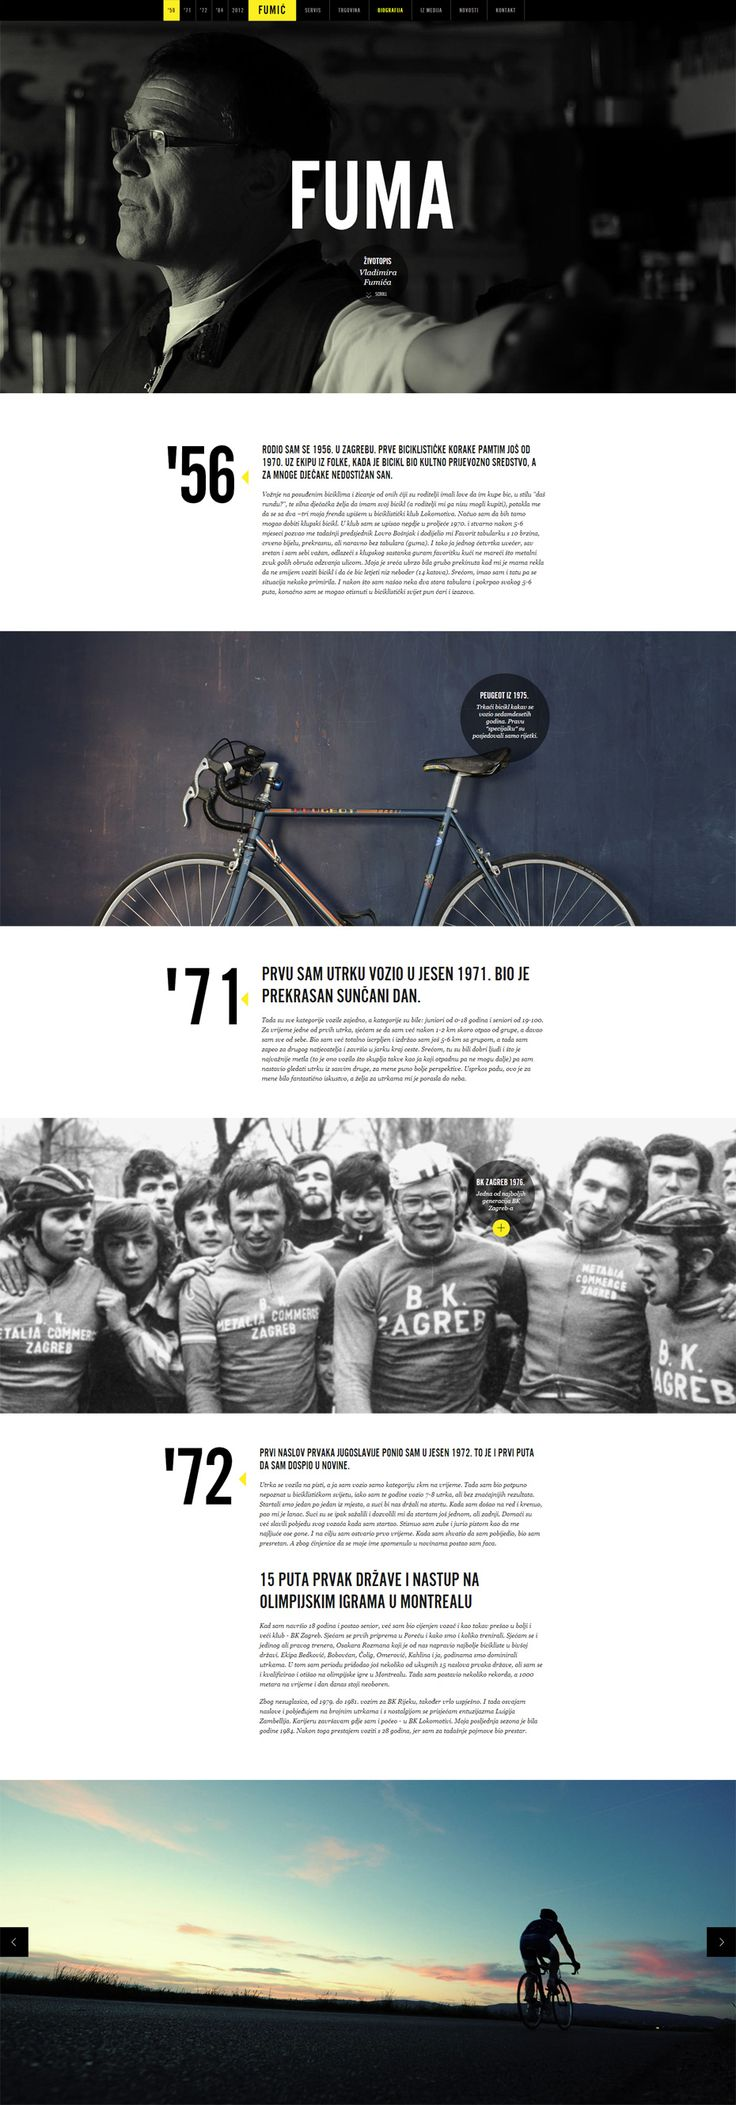 Case Study: Creating a Website for a Cycling Legend